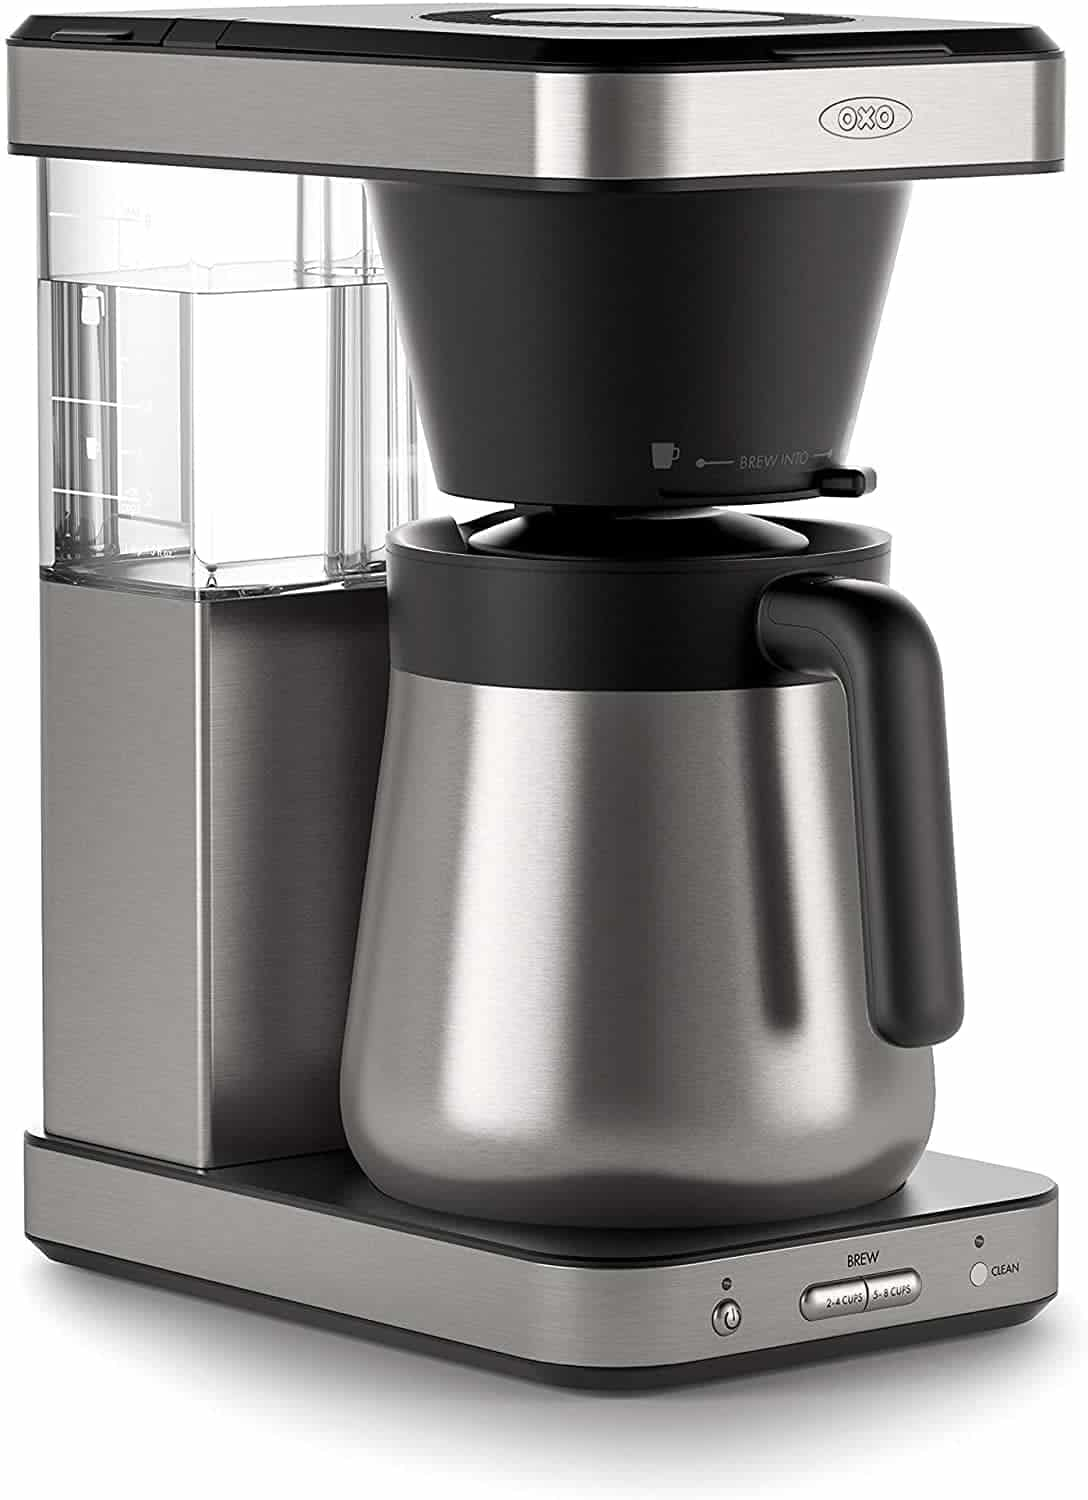 OXO 8-Cup Home Coffee Maker